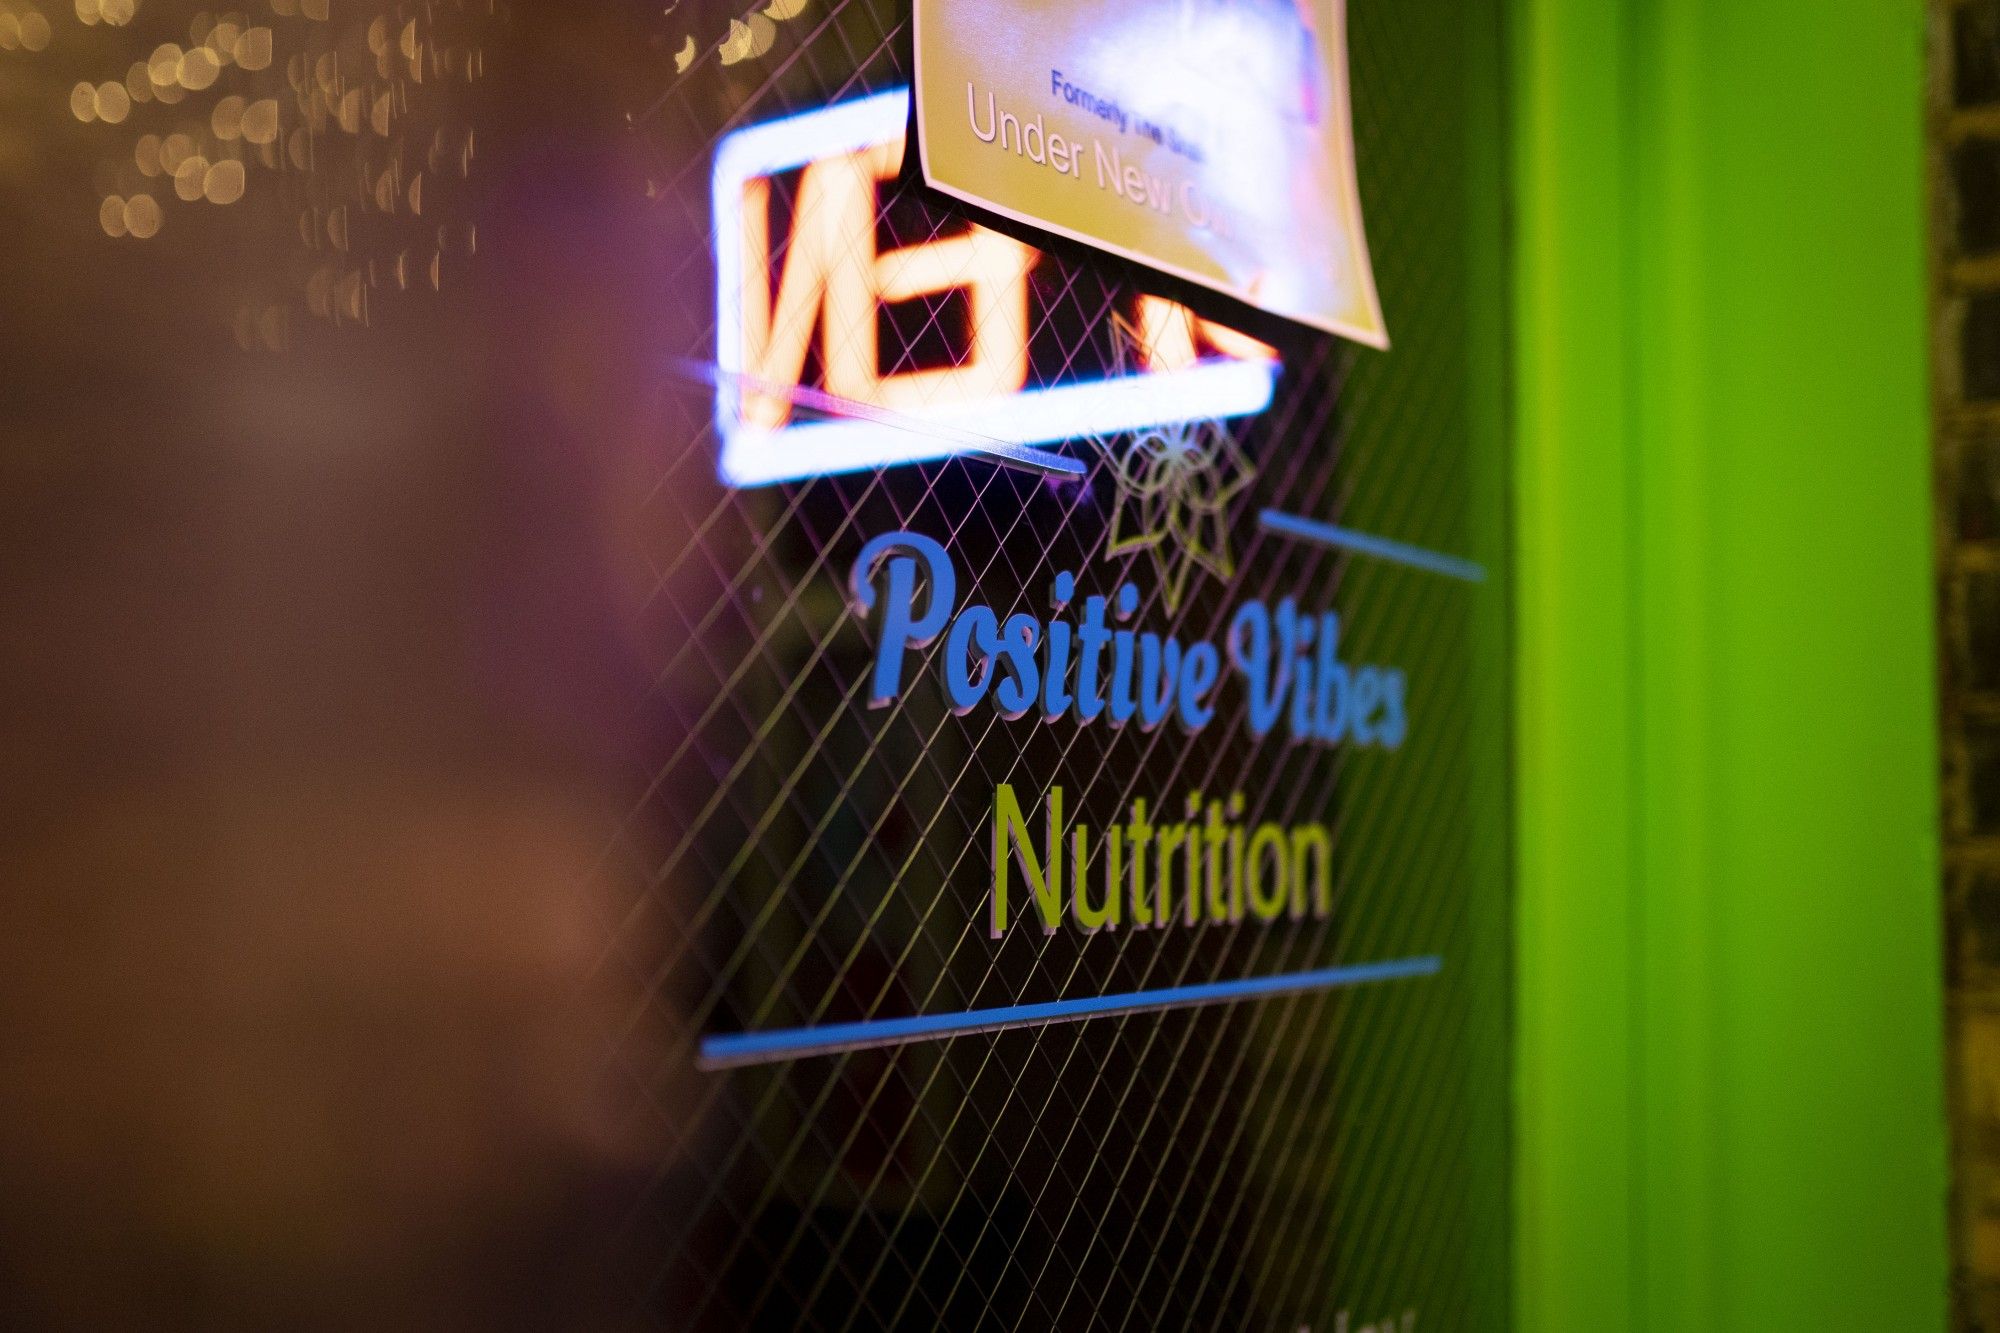 The entrance to Positive Vibes Nutrition's new Dinkytown location as seen on Friday, Nov. 15.